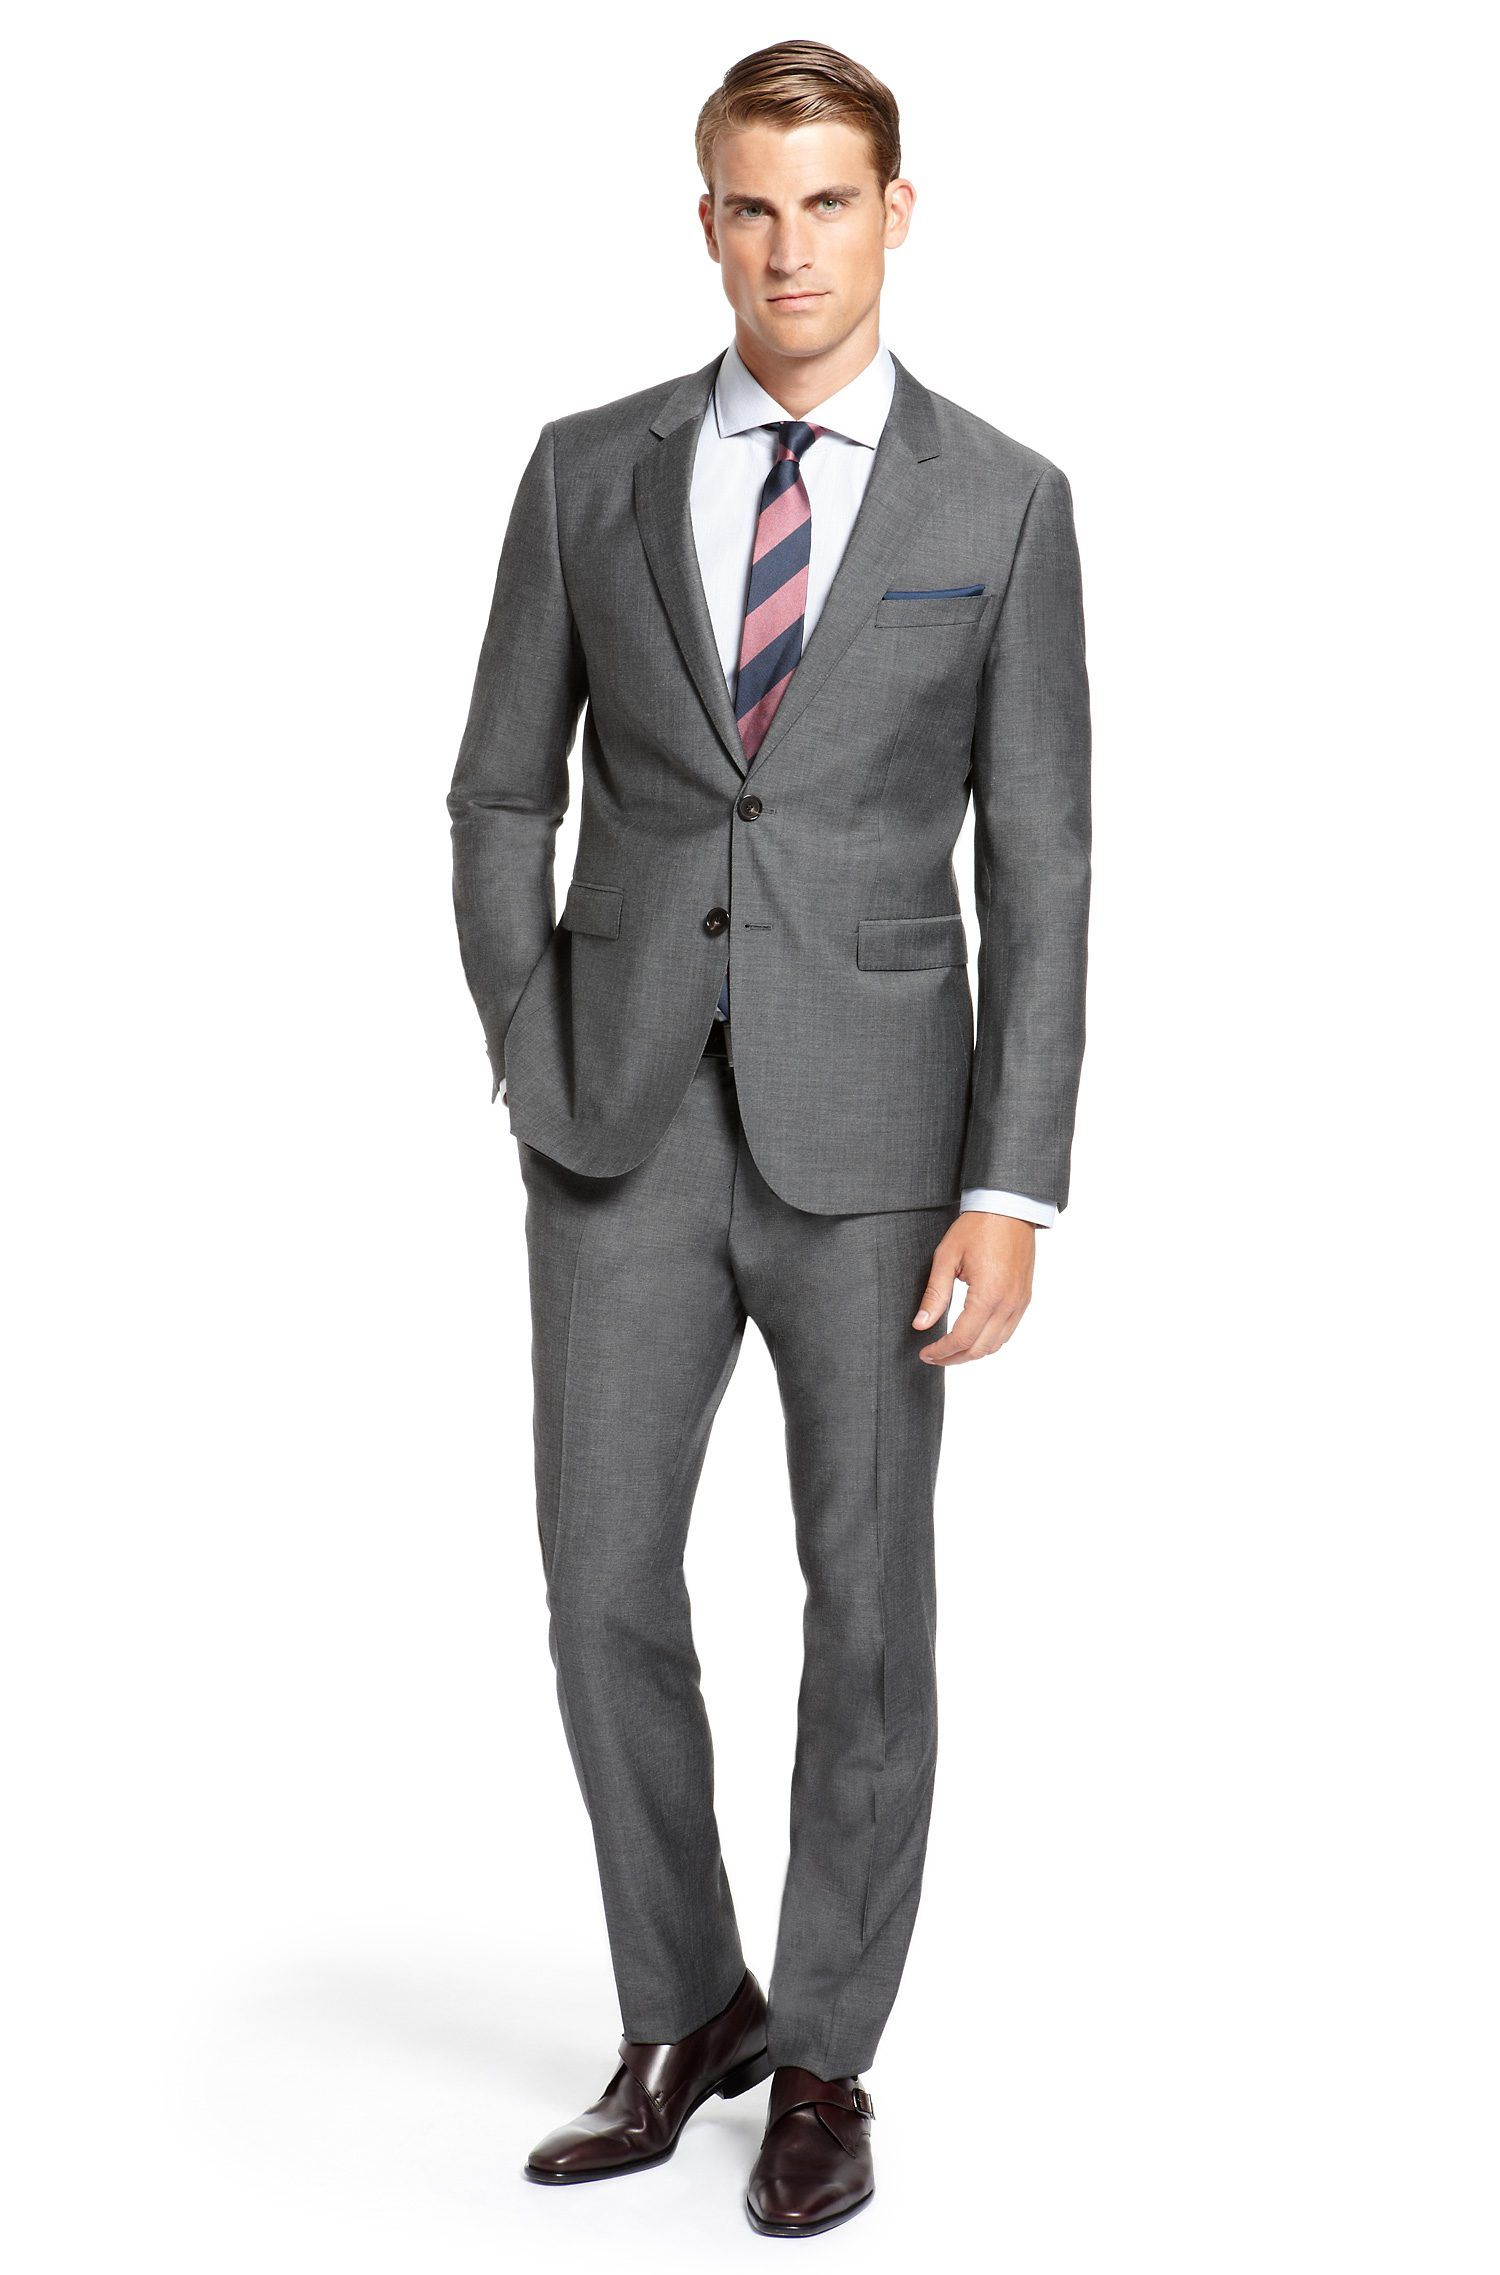 The suit men | Grey Business Men Suit | Fashion | Pinterest | UX ...